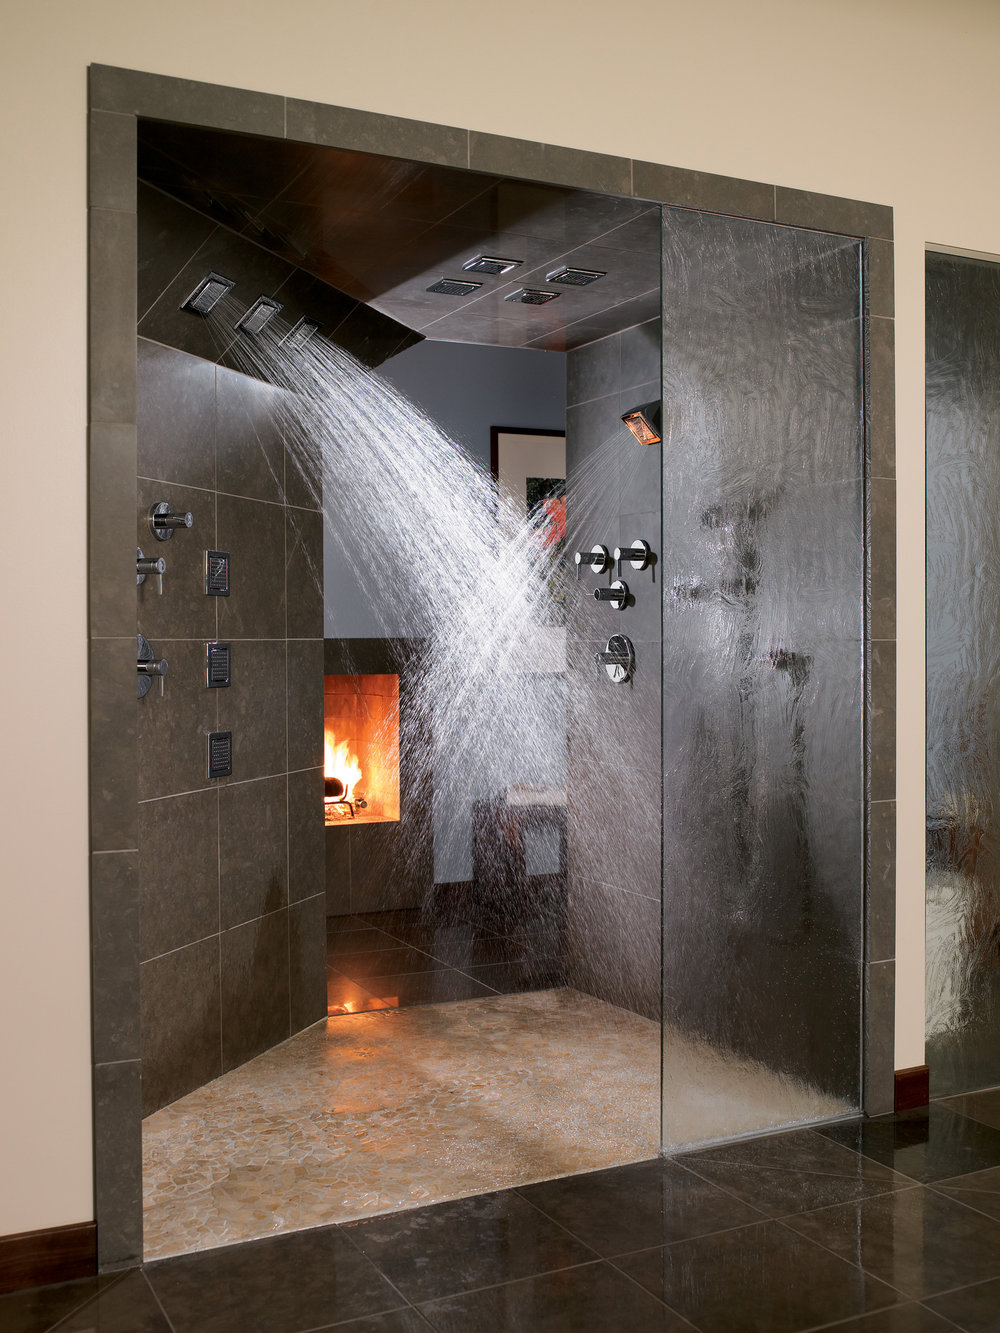 kohler 2 person shower.jpg